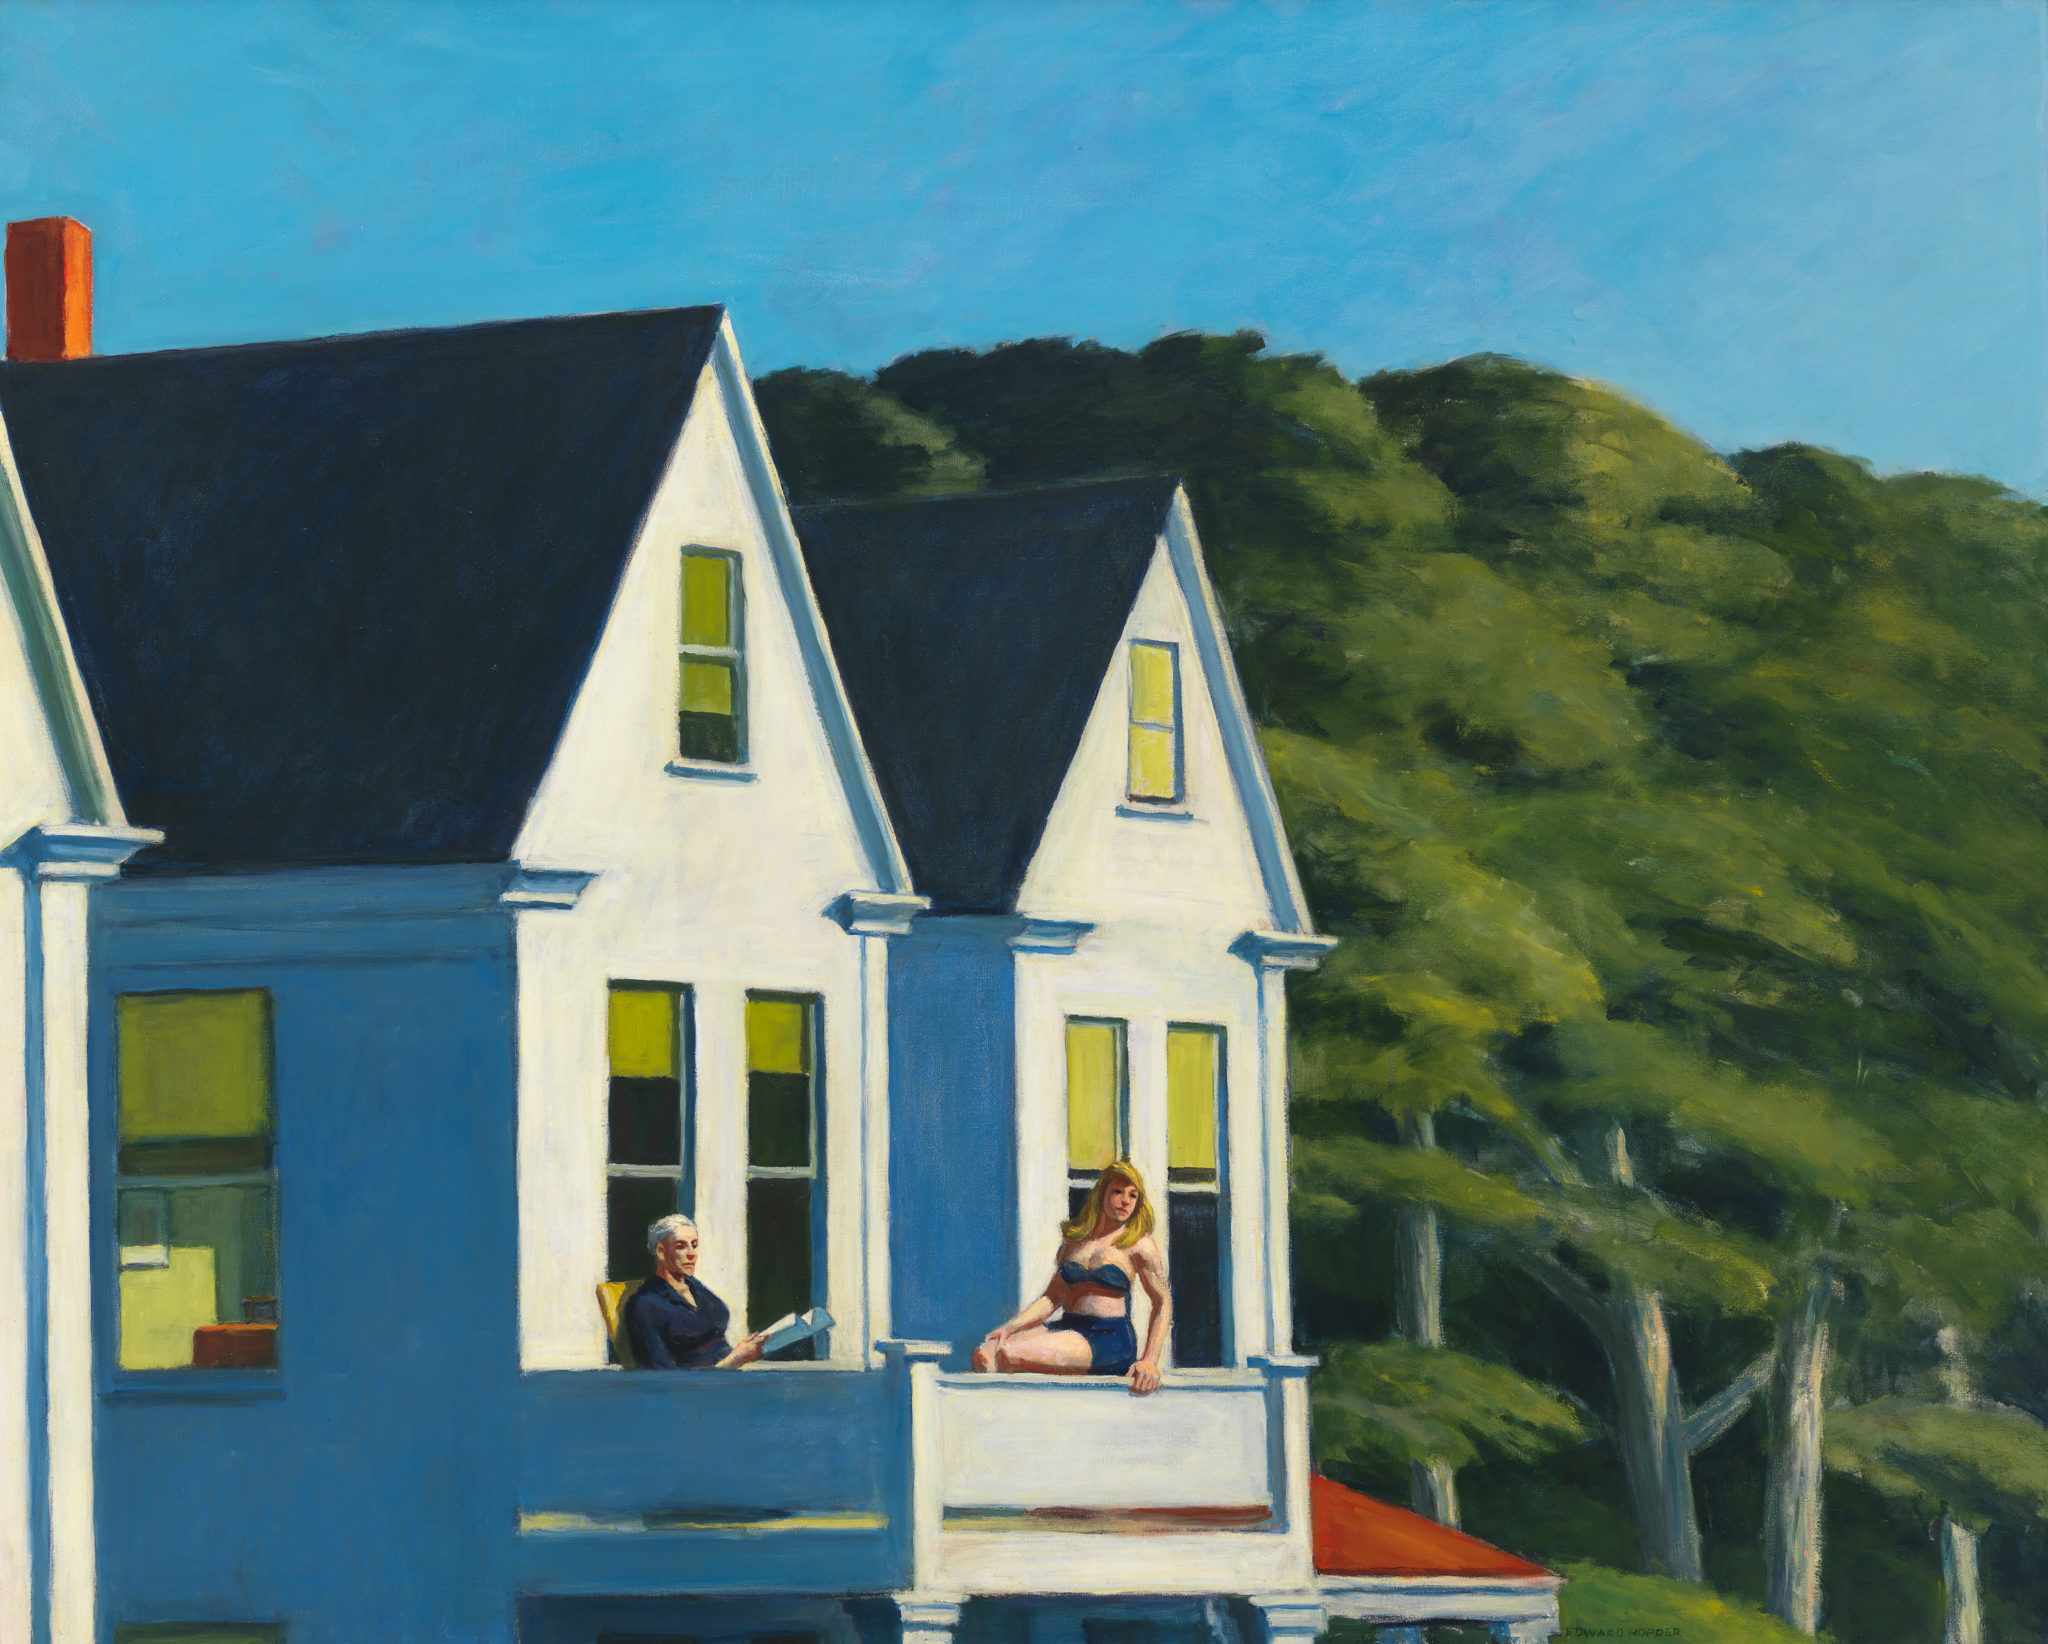 Edward Hopper (1882 1967) Second Story Sunlight 1960 Oil on canvas, 102,1x127,3 cm Whitney Museum of American Art, New York; purchase,with funds from the Friends of the Whitney Museum of American Art © Whitney Museum of American Art, N.Y.